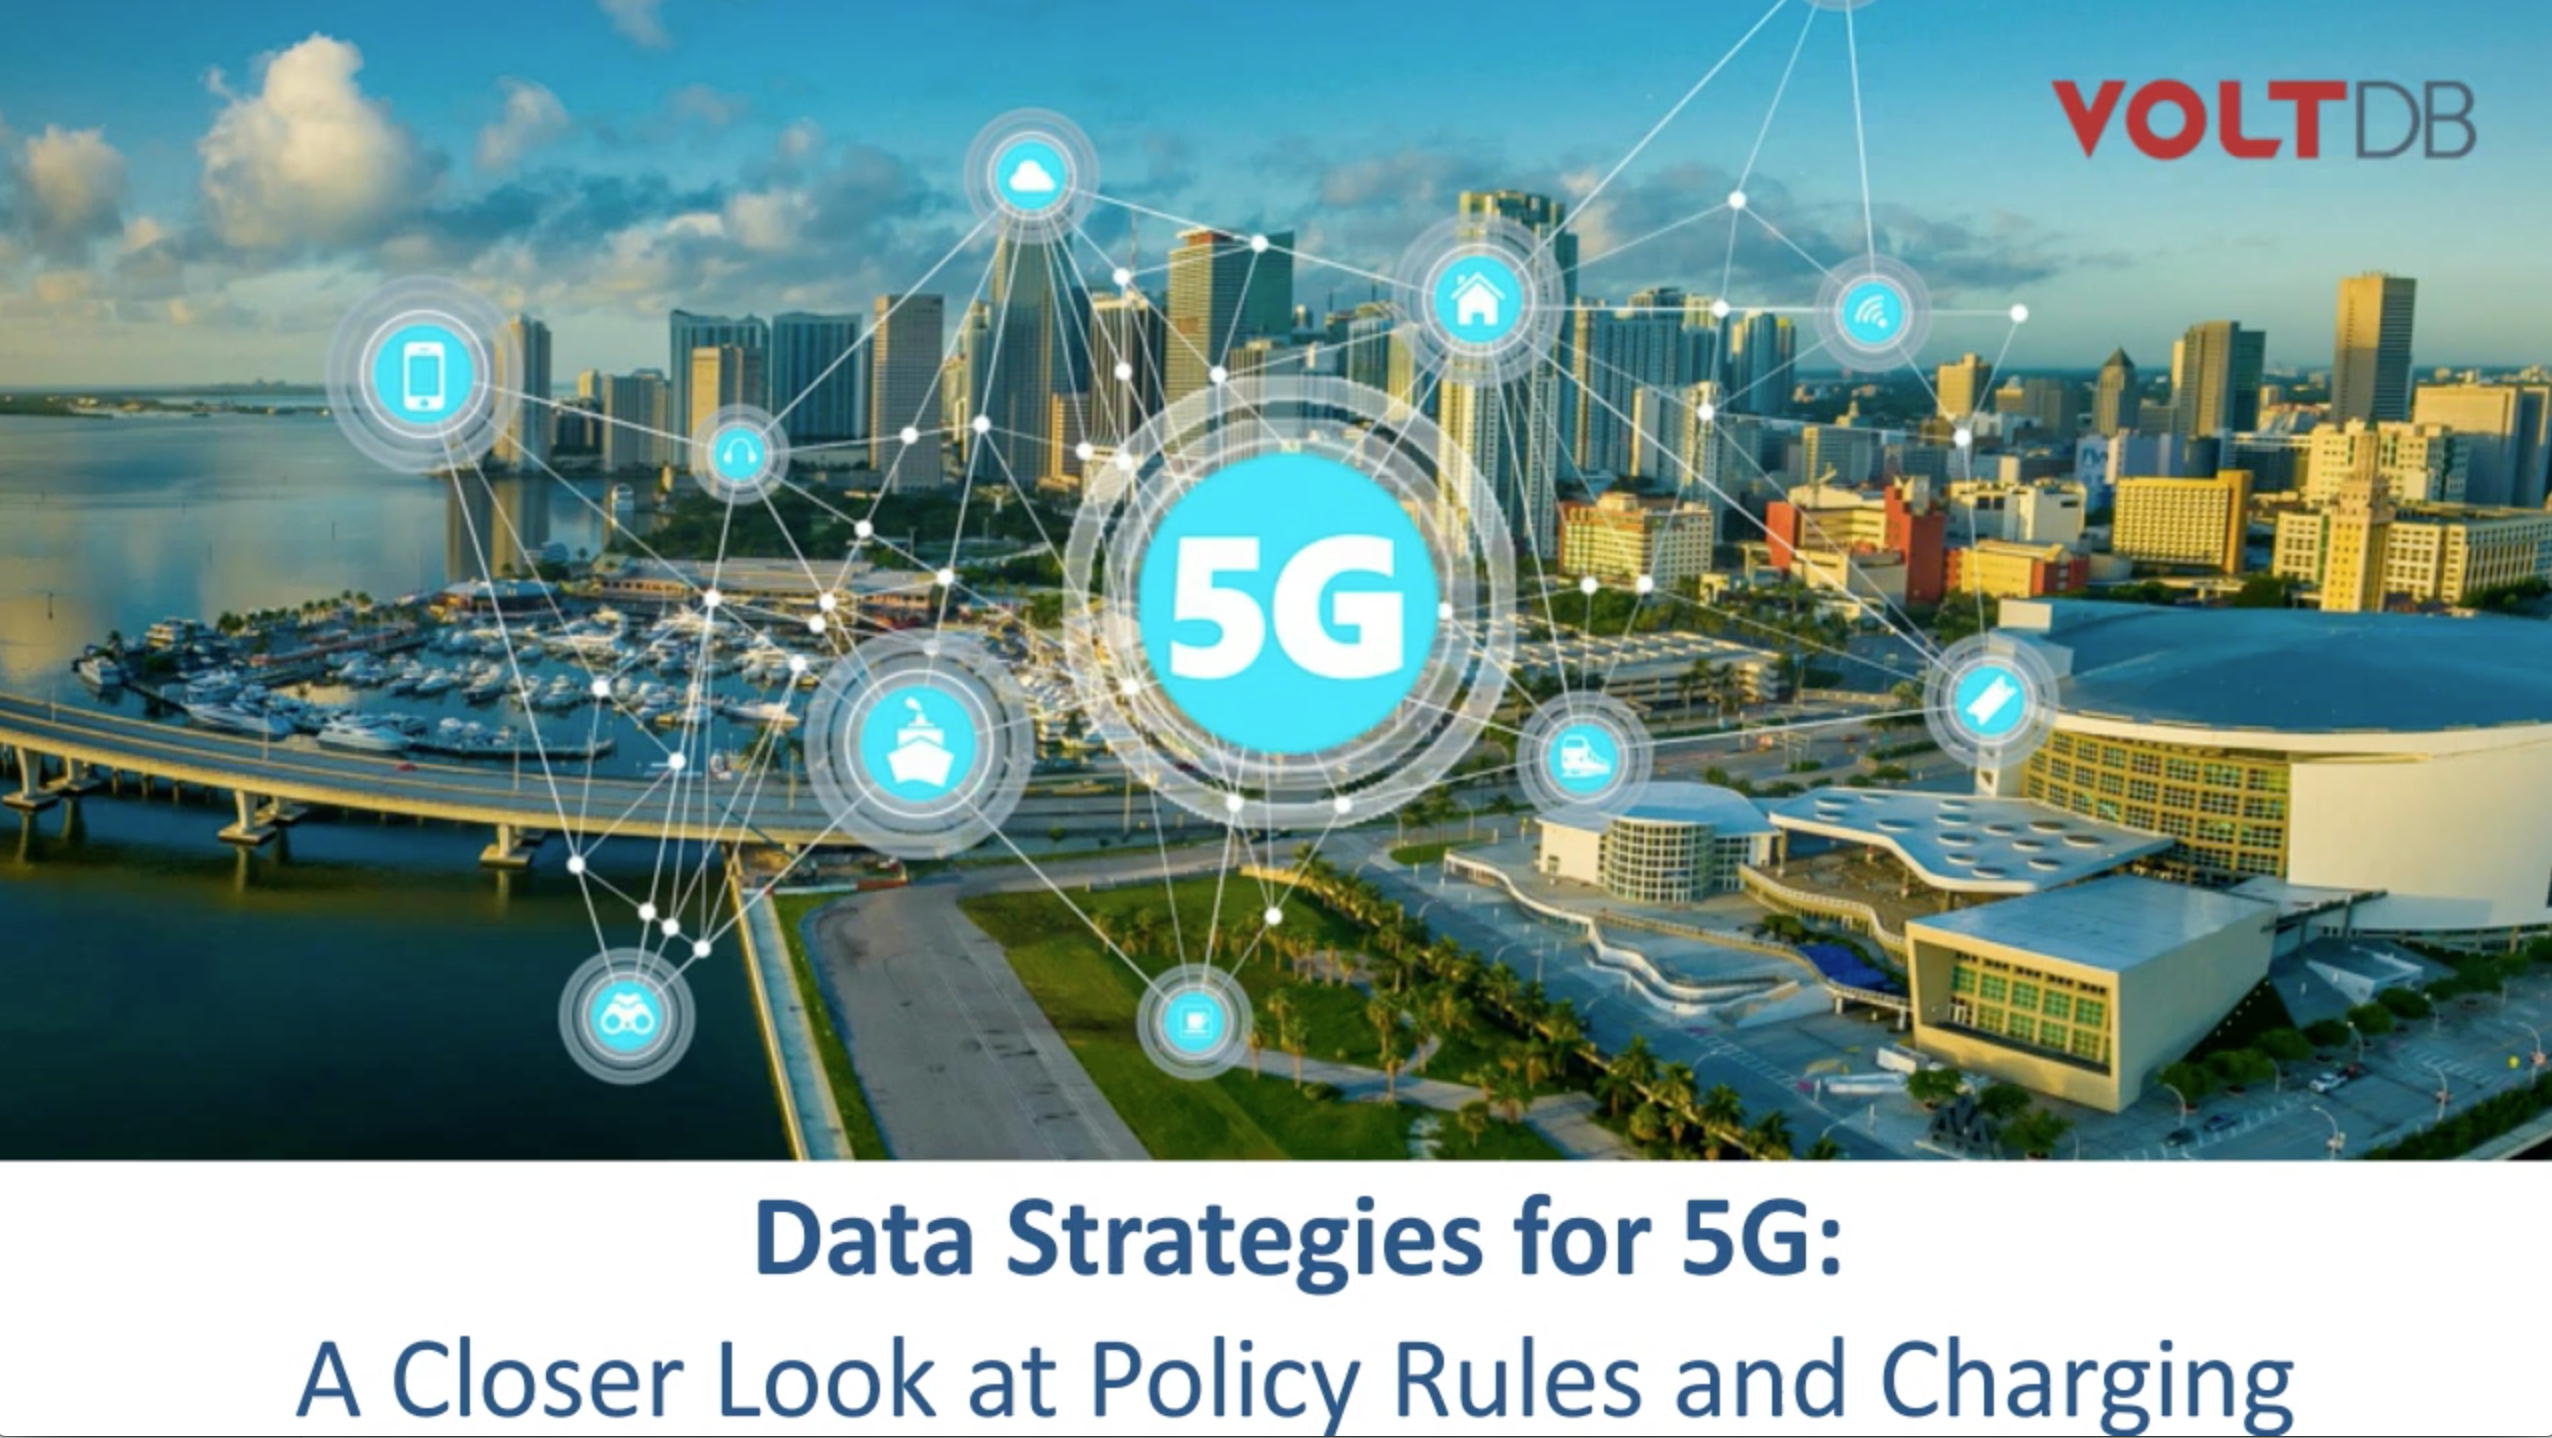 Data Strategies for 5G Webinar